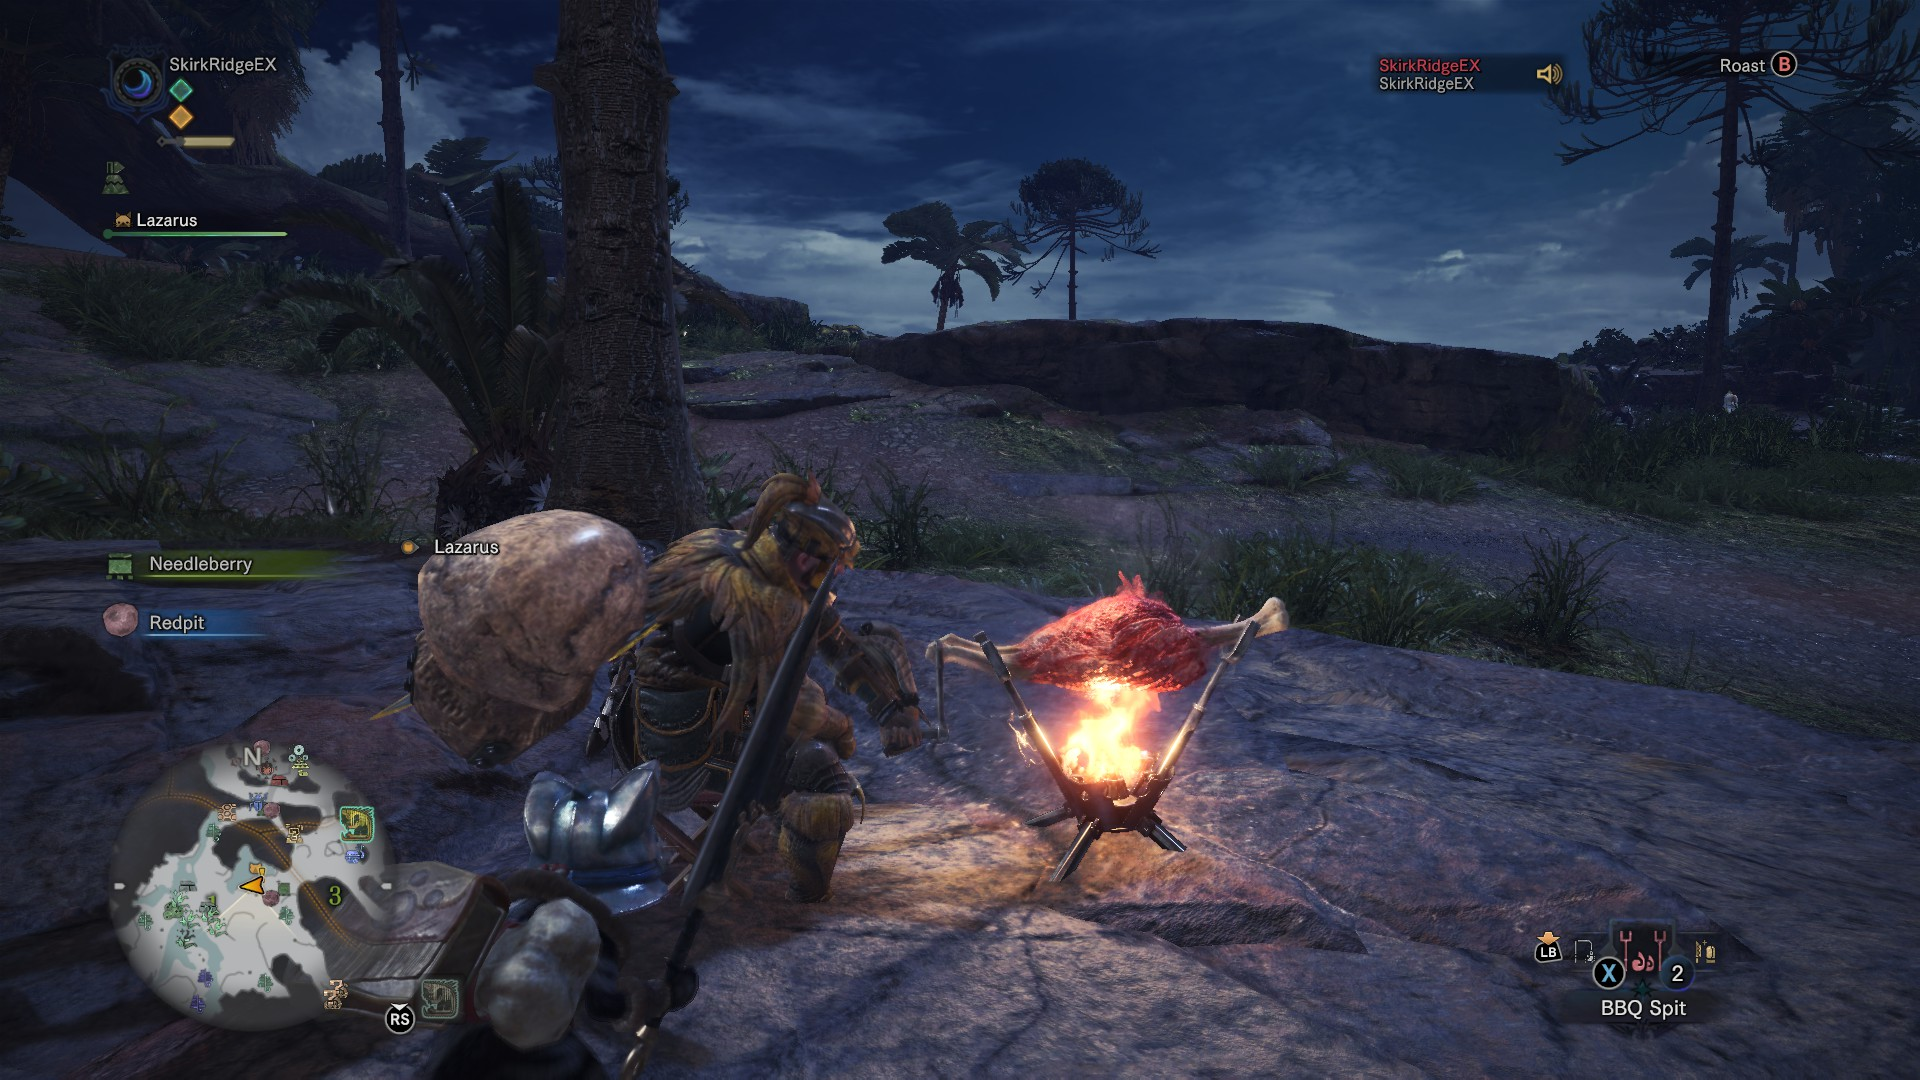 Player is barbecuing meat at night.